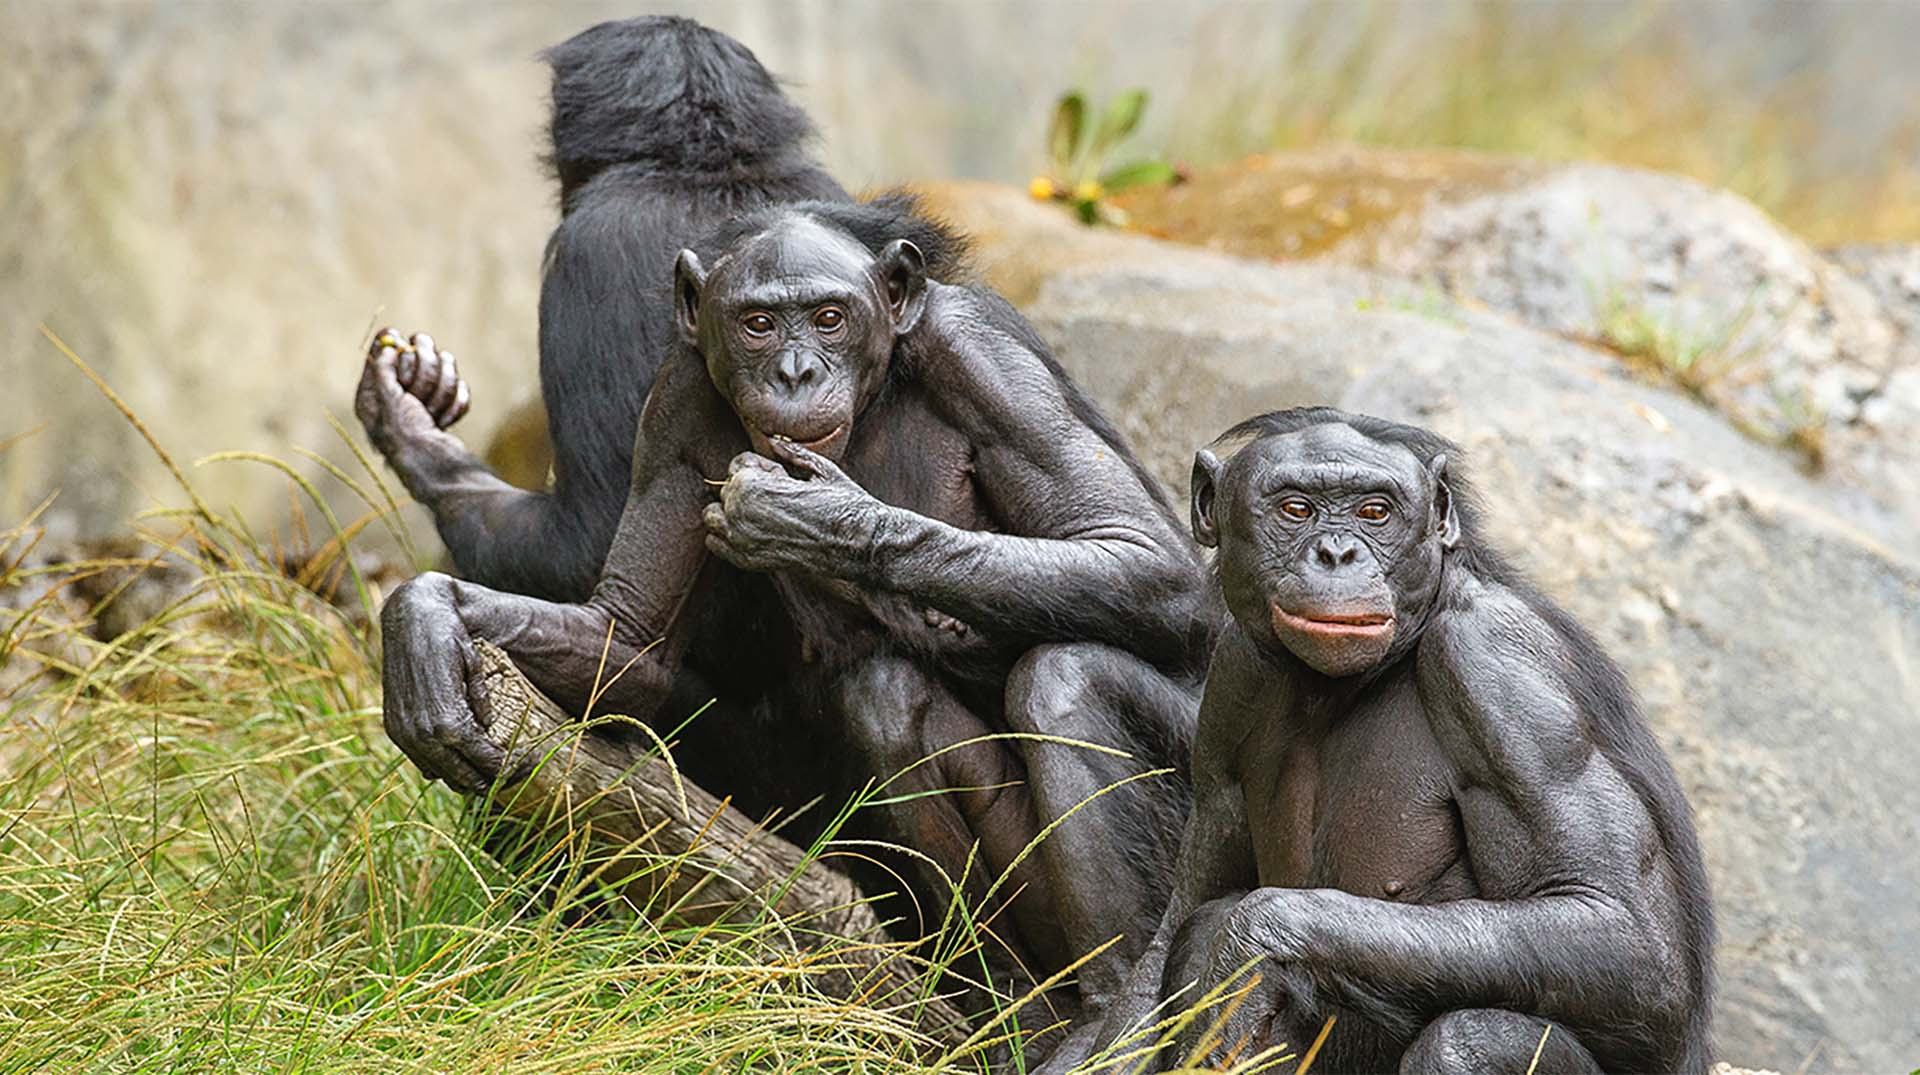 Three bonobos at the San Diego Zoo huddled in a group socializing with one another.